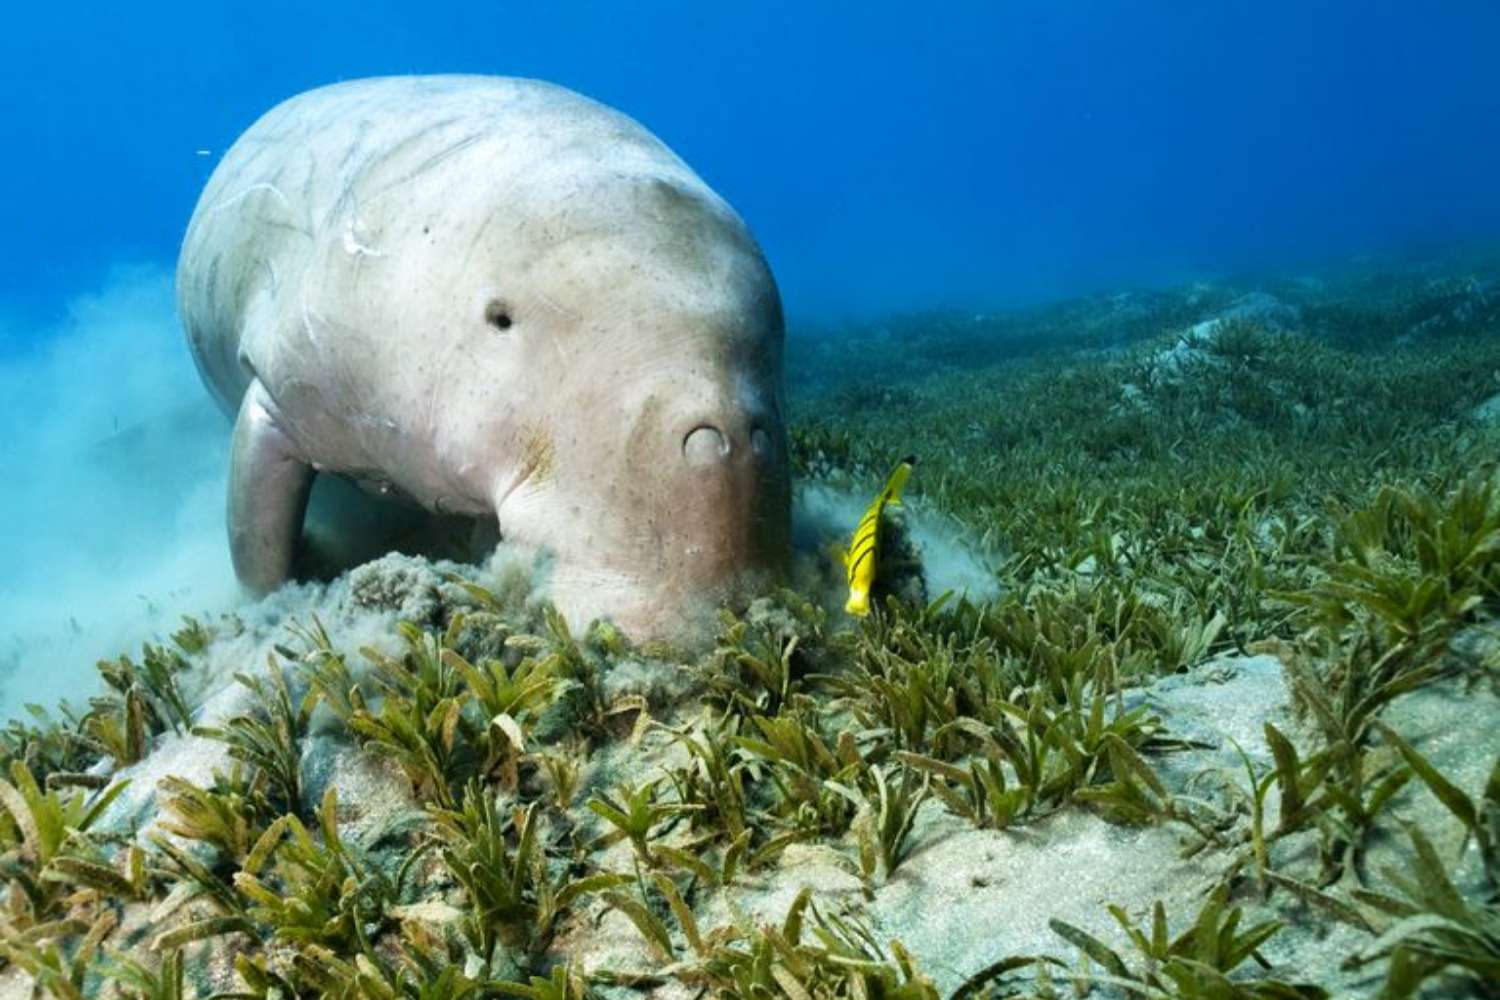 Dugong and Cleaner Fish on Seagrass.